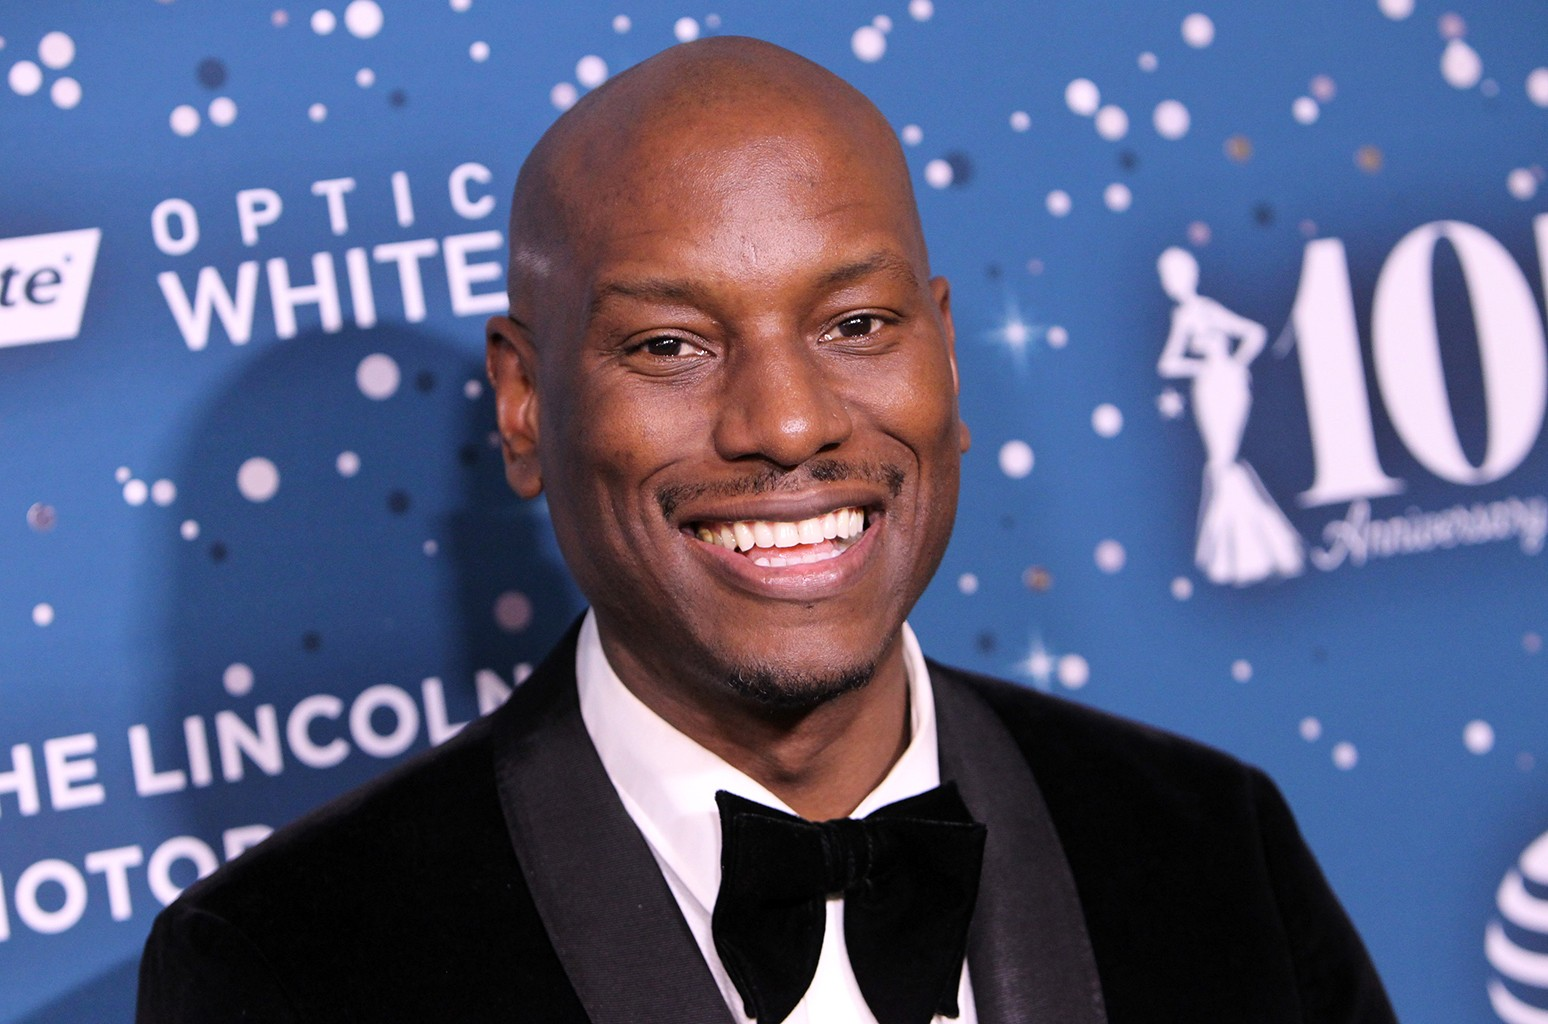 Tyrese Gibson at Essence Black Women in Hollywood Awards at the Beverly Wilshire Four Seasons Hotel on Feb. 23, 2017 in Beverly Hills, Calif.